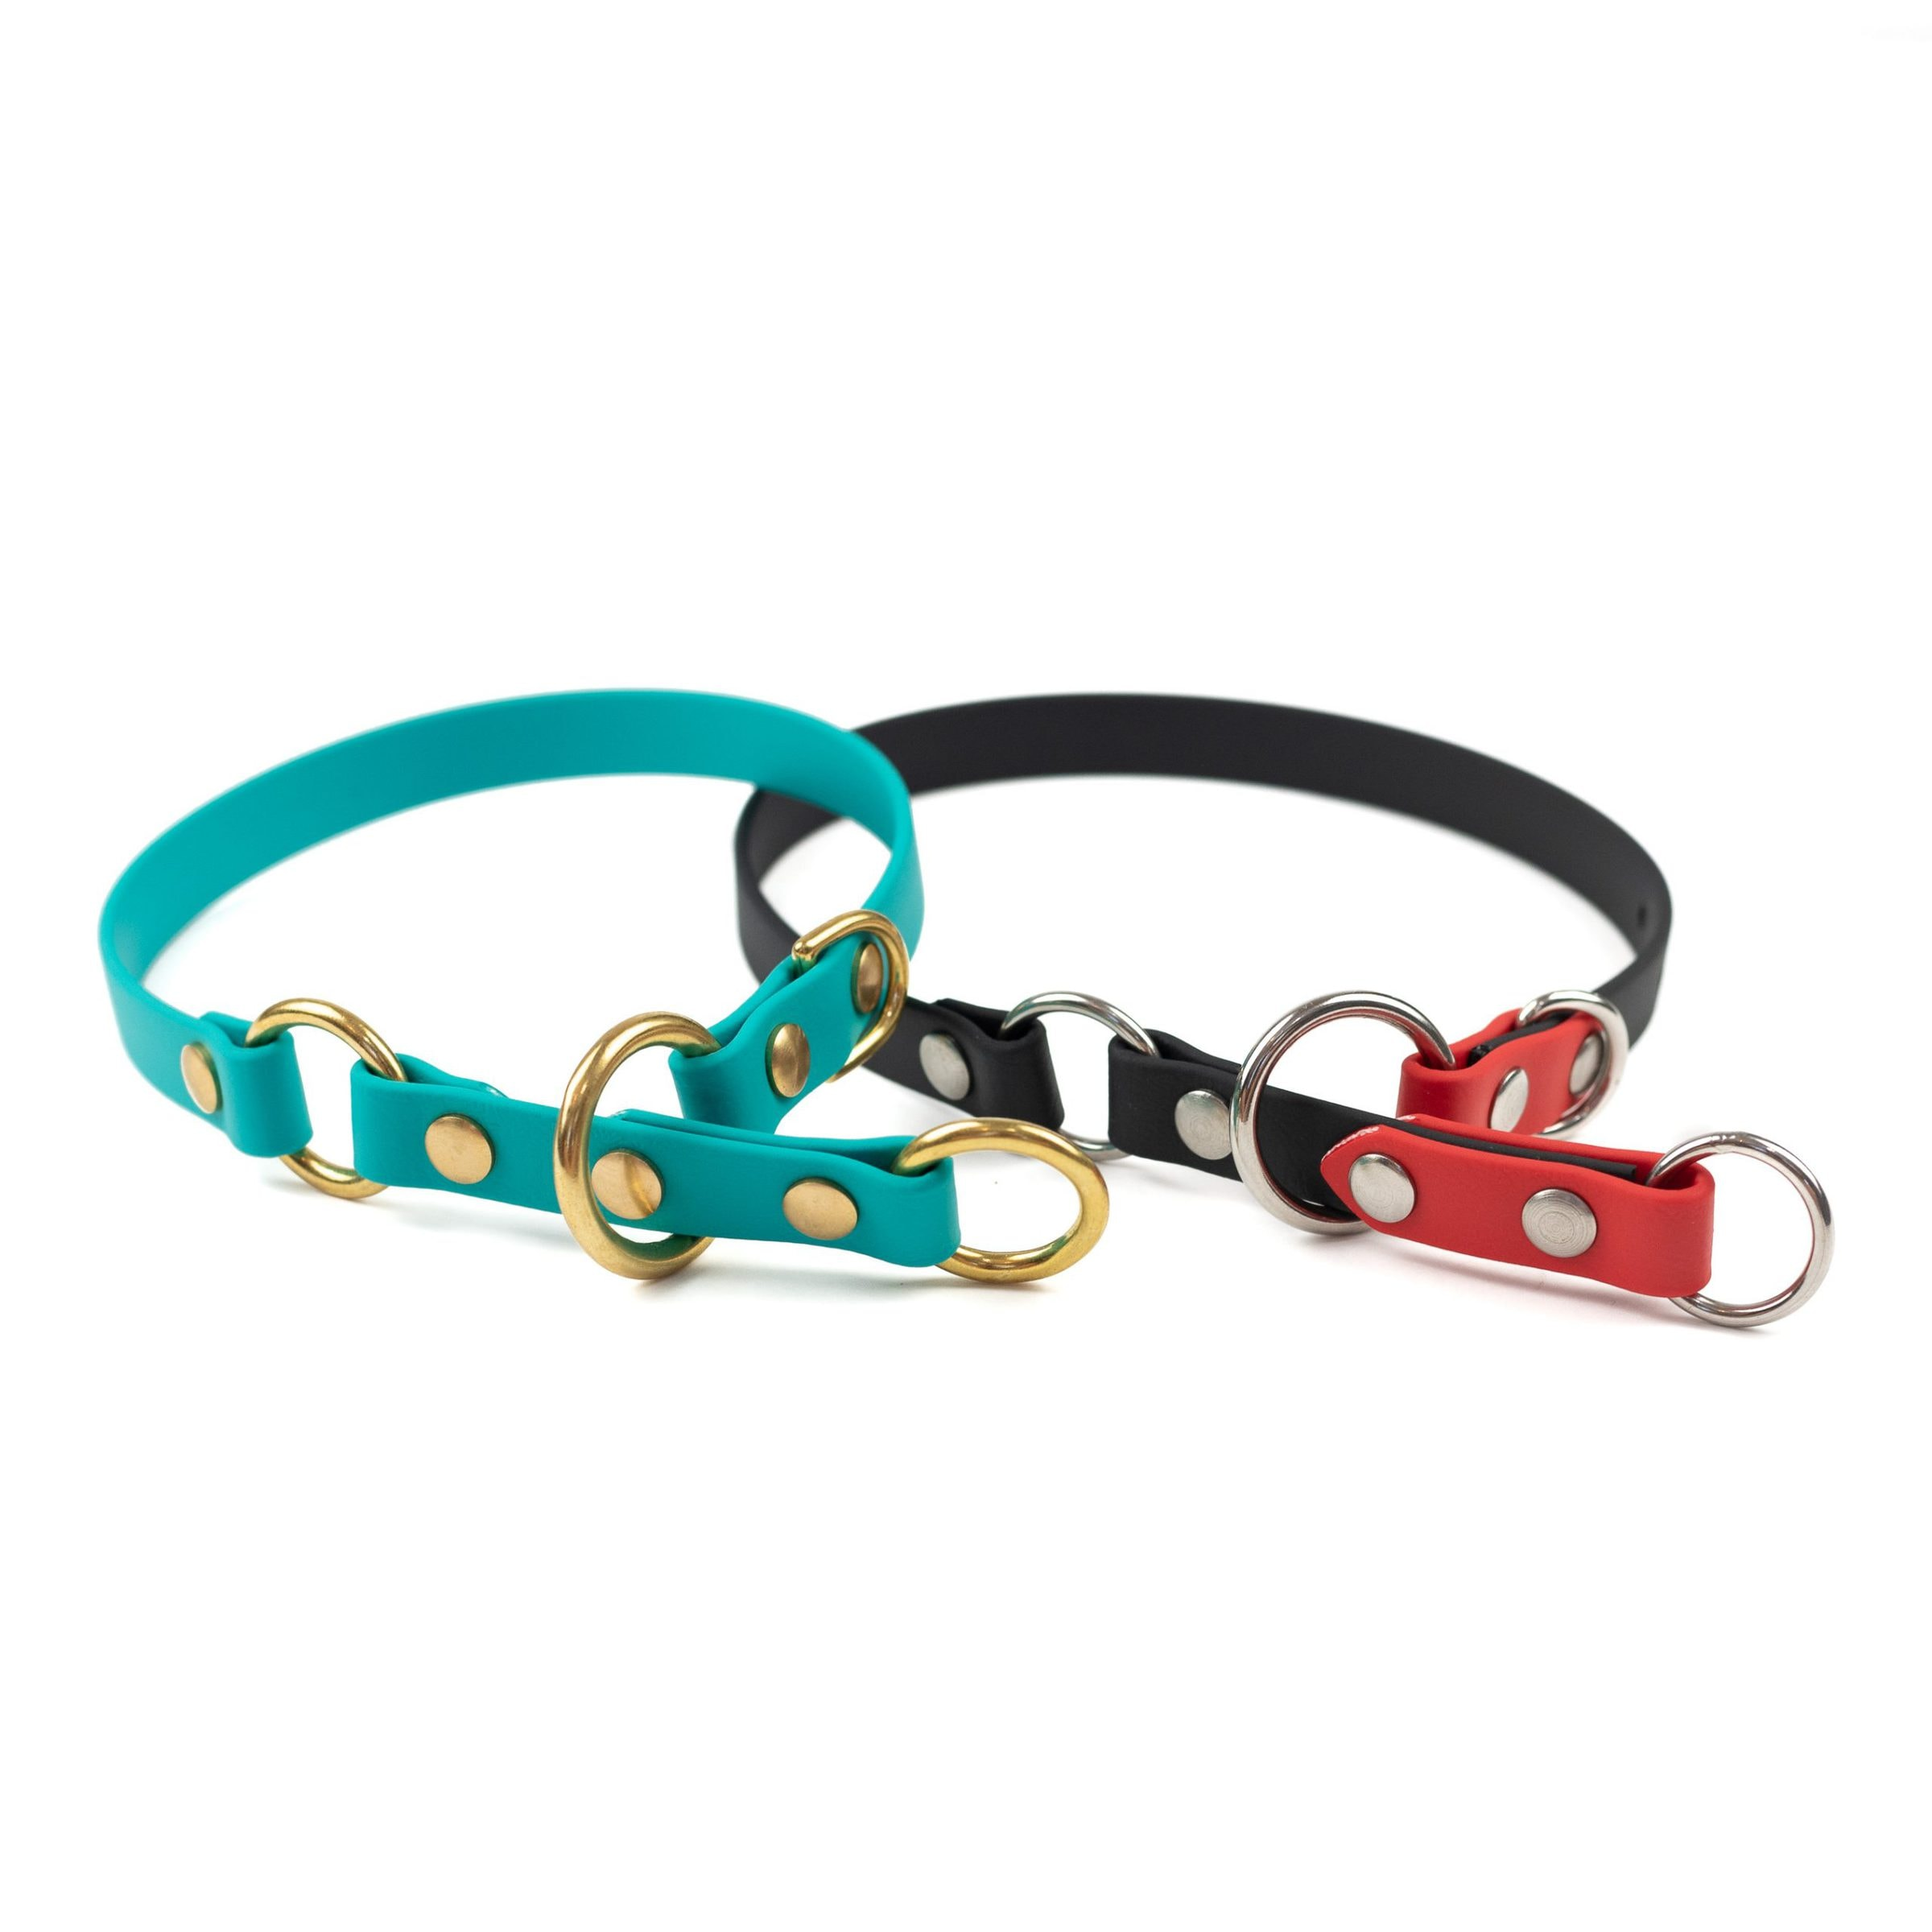 "black, red, stainless steel and teal, brass 5/8"" o-ring limited slip dog collar"